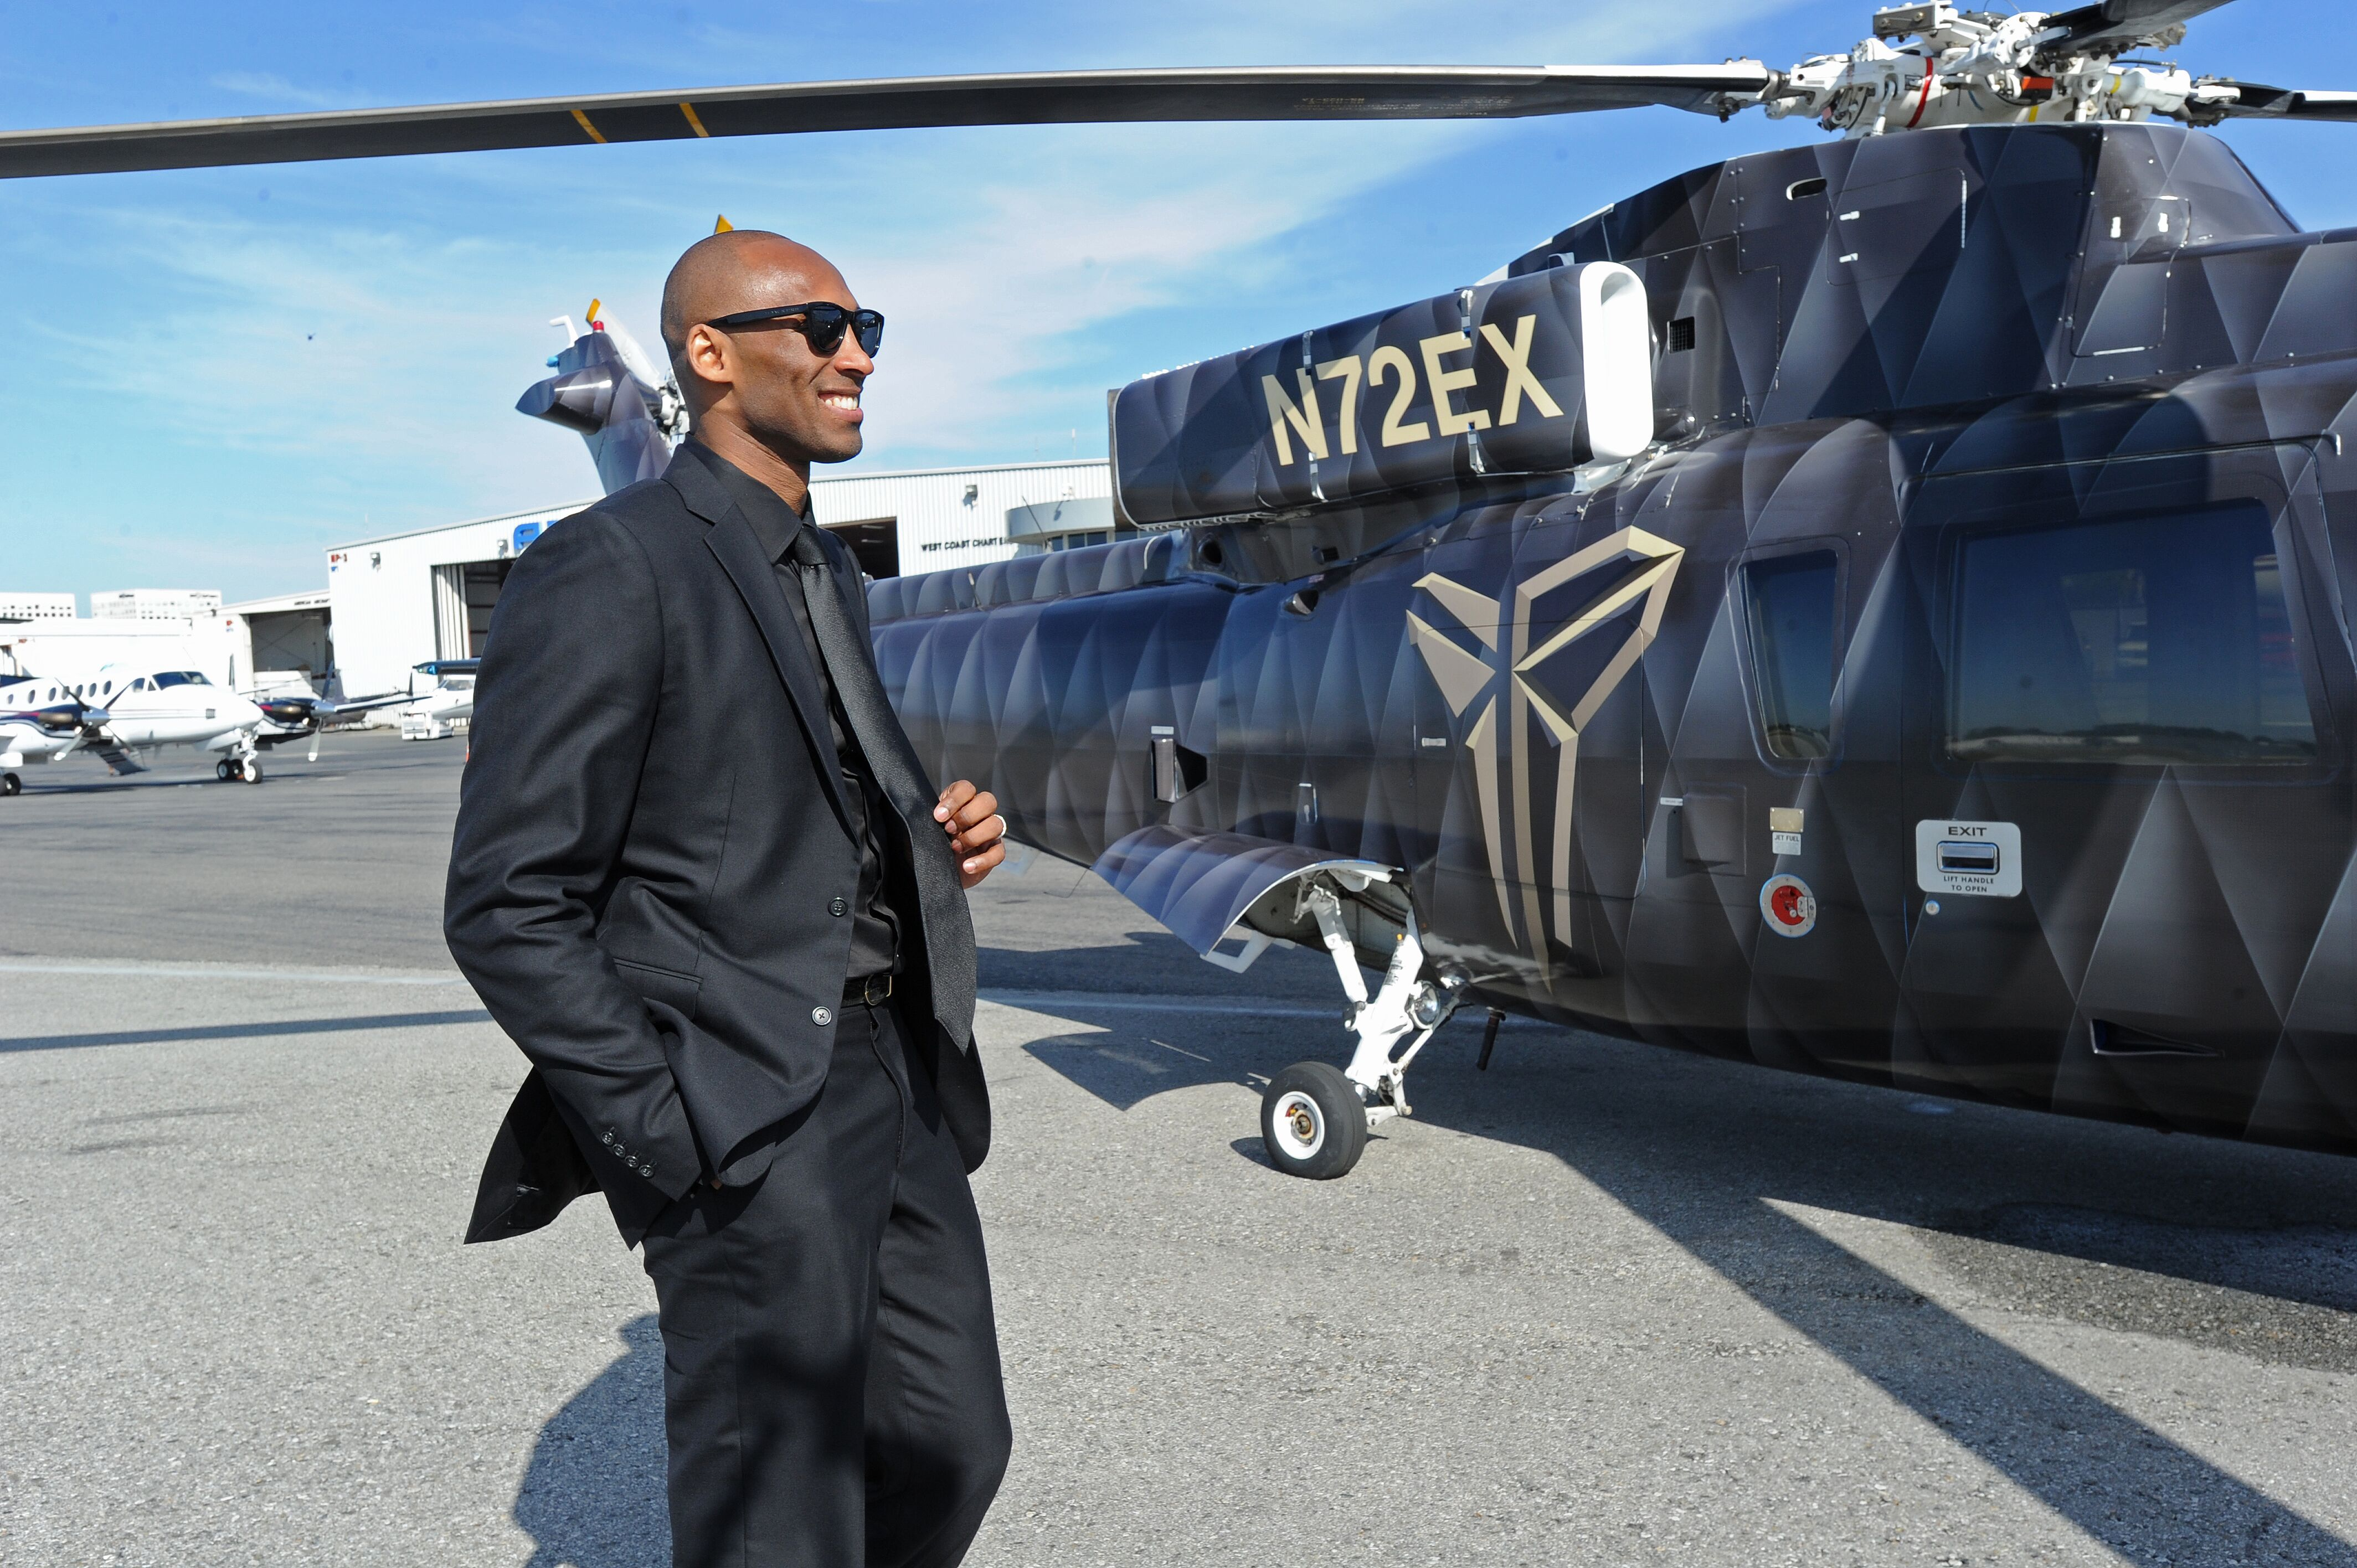 Kobe Bryant boarding a helicopter on the way to his last game against the Utah Jazz in April 2016/ Source: Getty Images